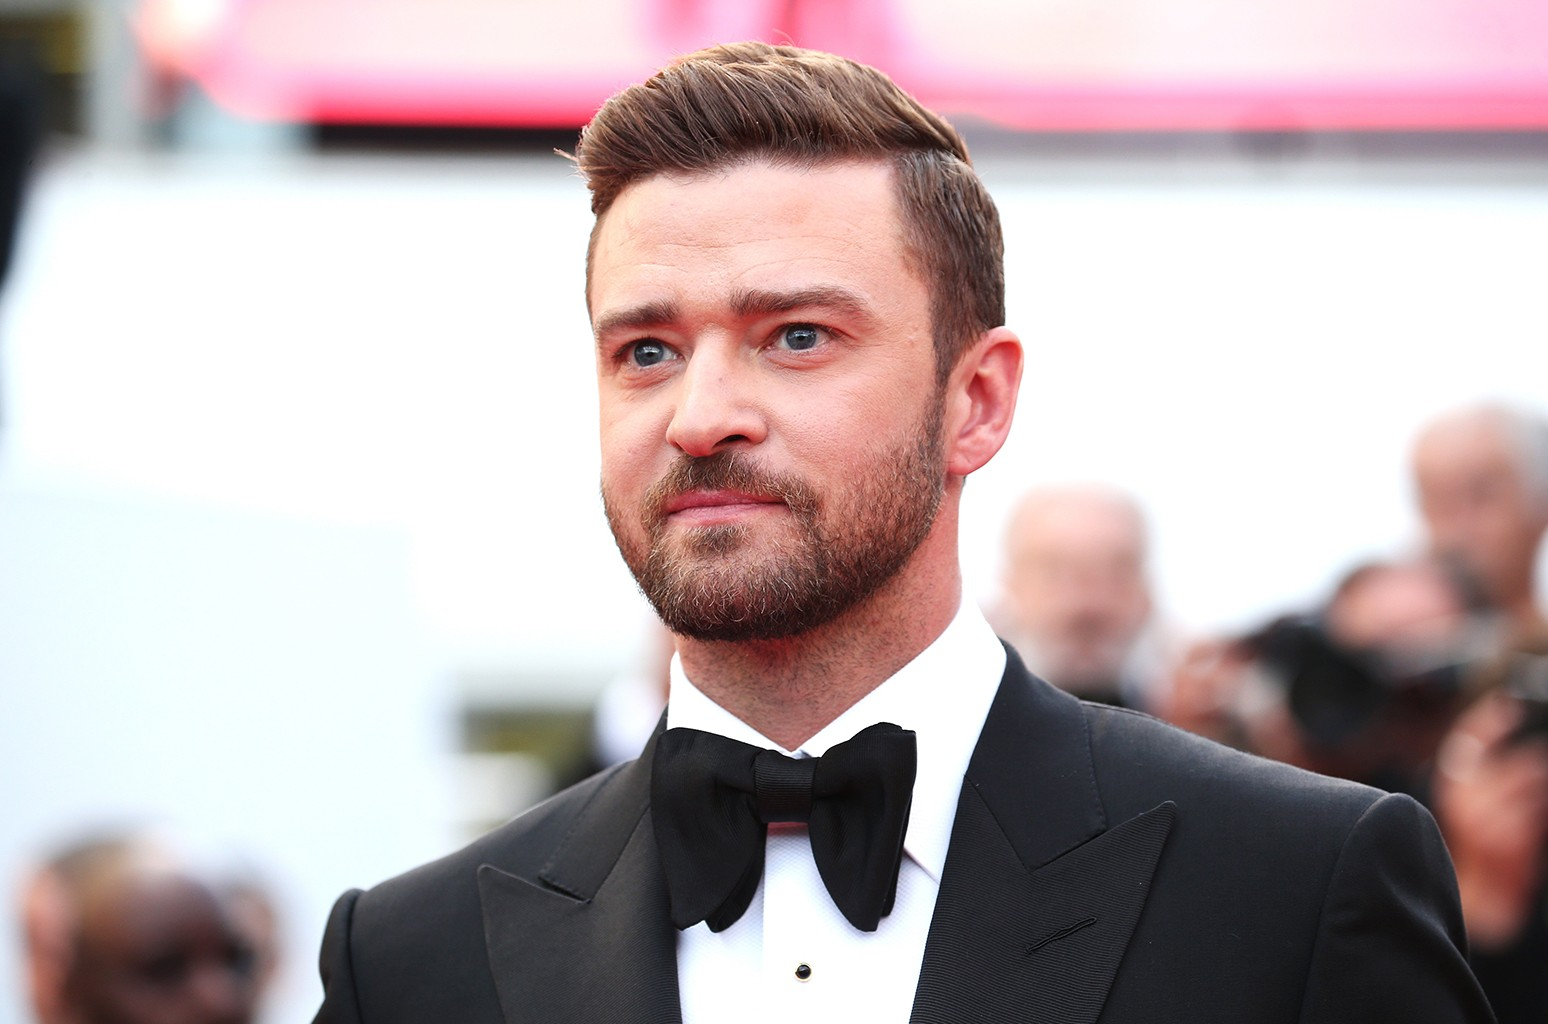 Justin Timberlake during the 69th annual Cannes Film Festival